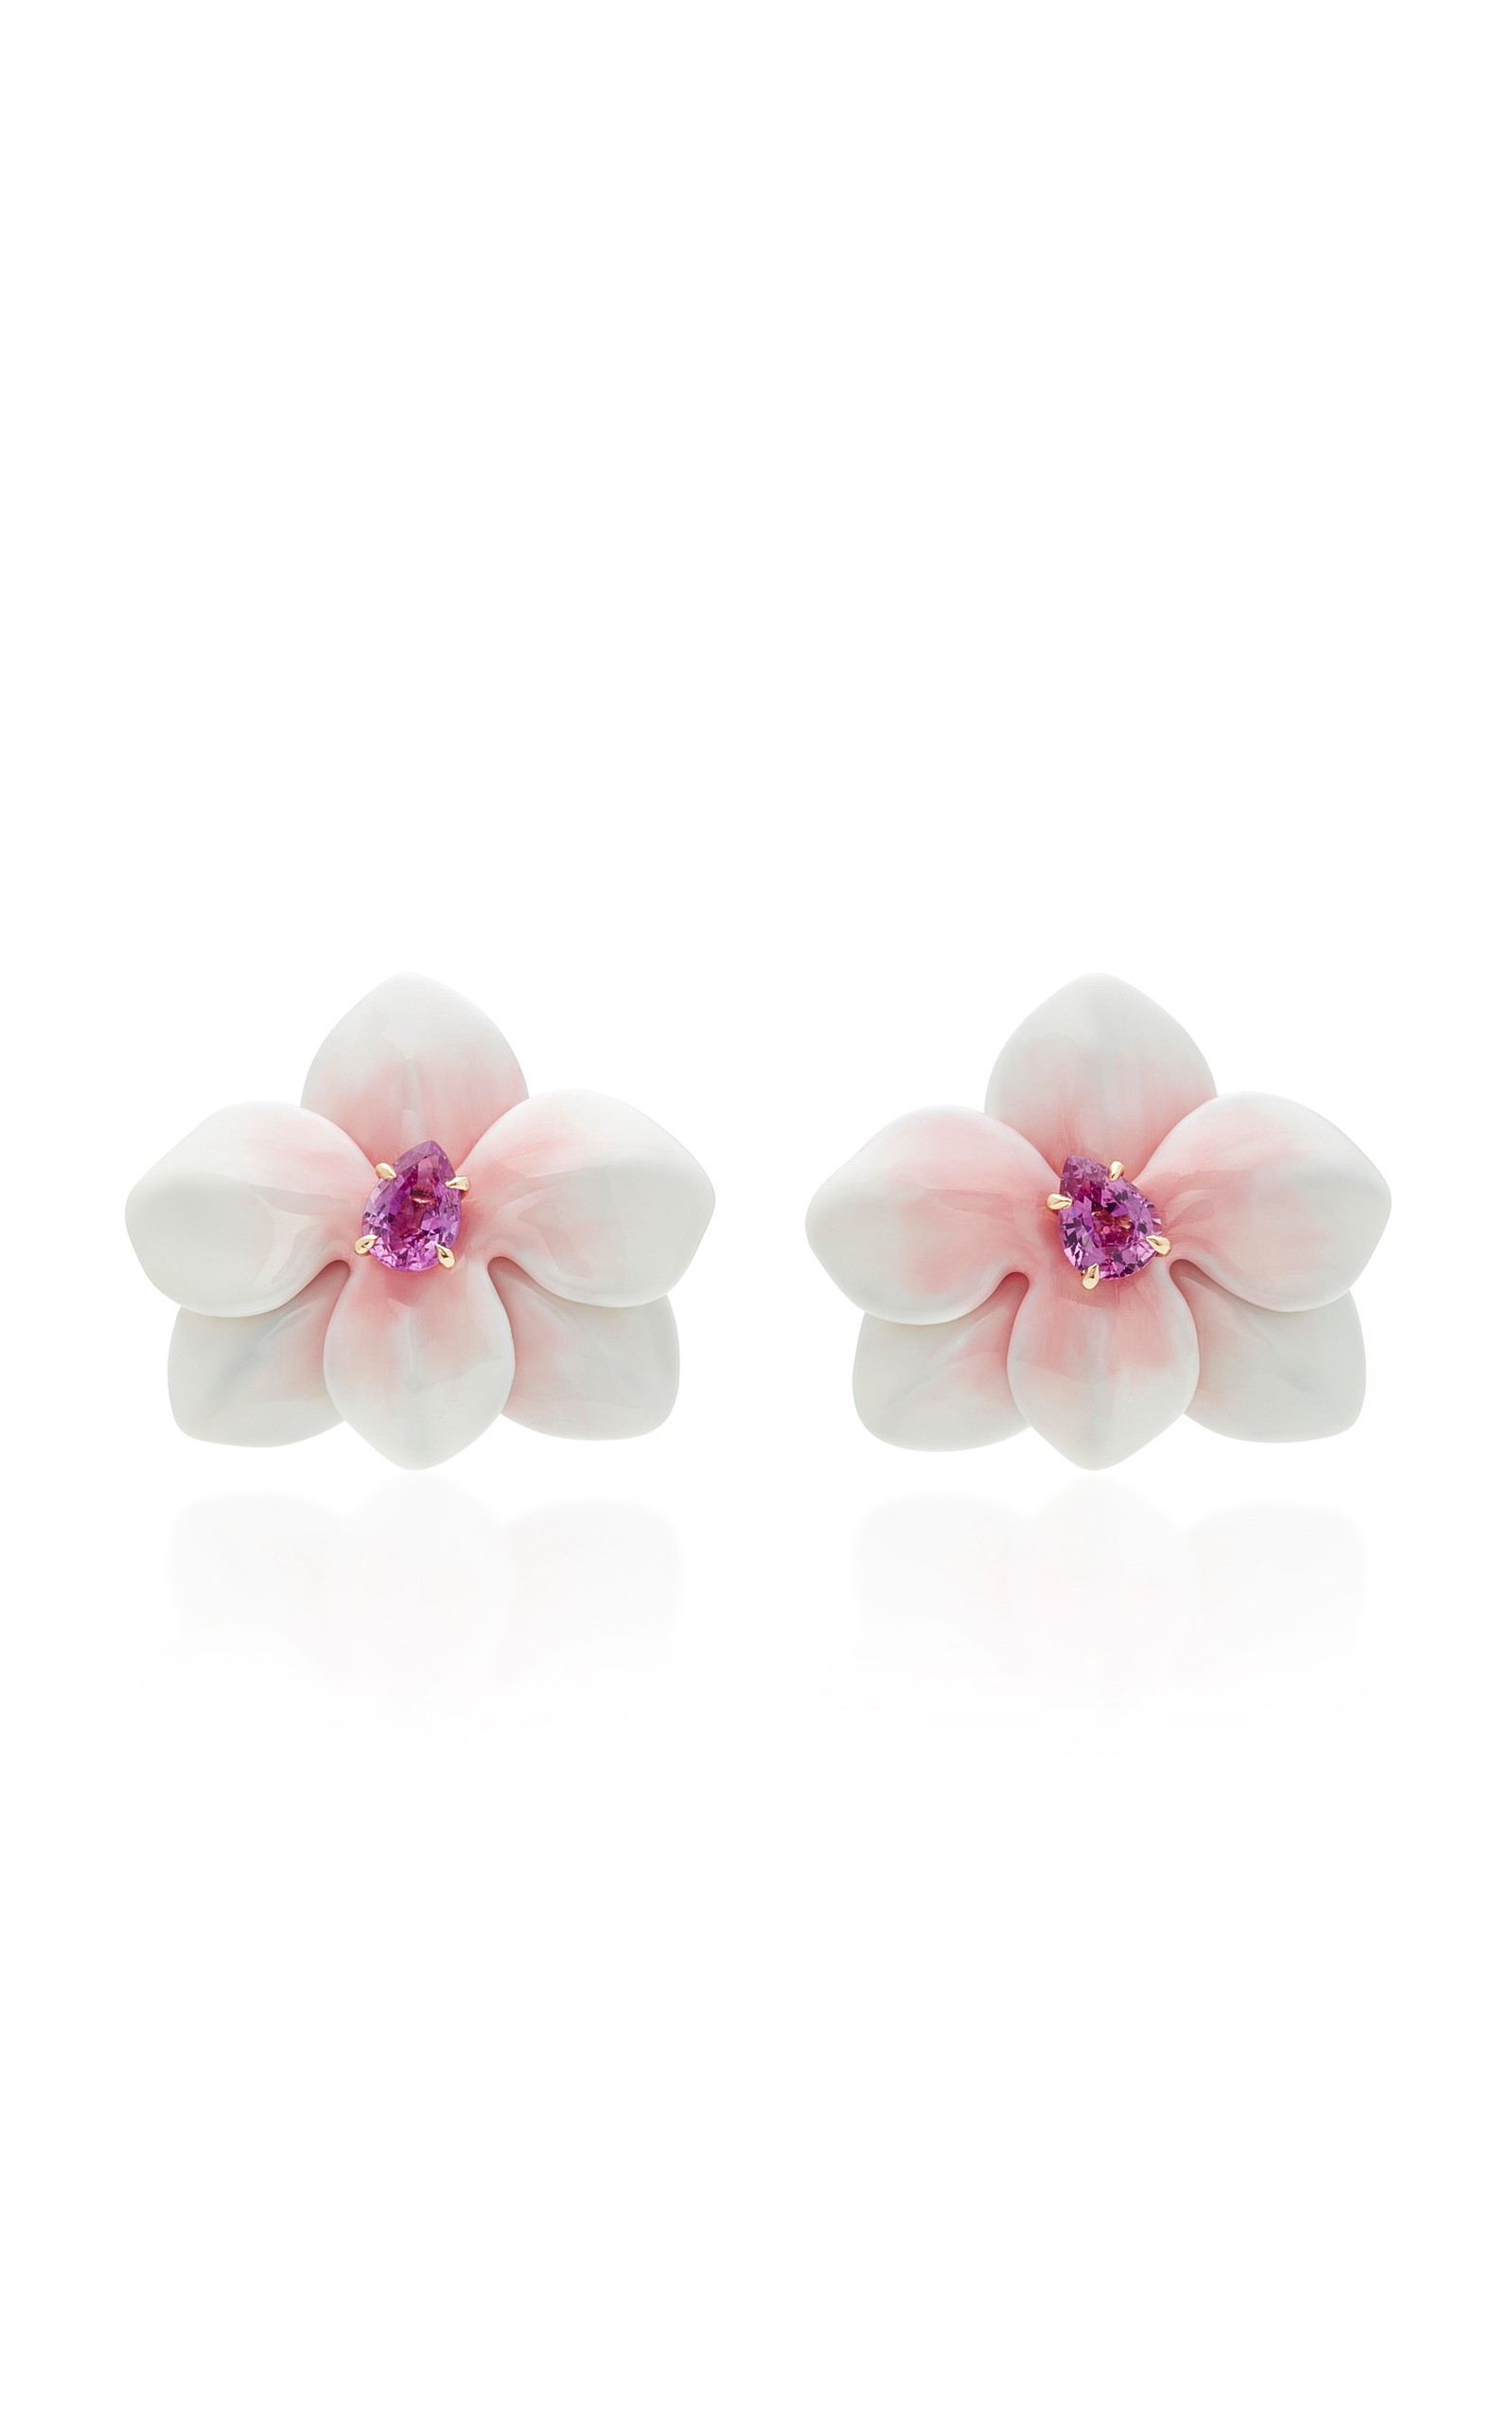 large from item stud white fashionable flower in pair exaggerated style jewelry women new crystals flowers resort seaside earrings for